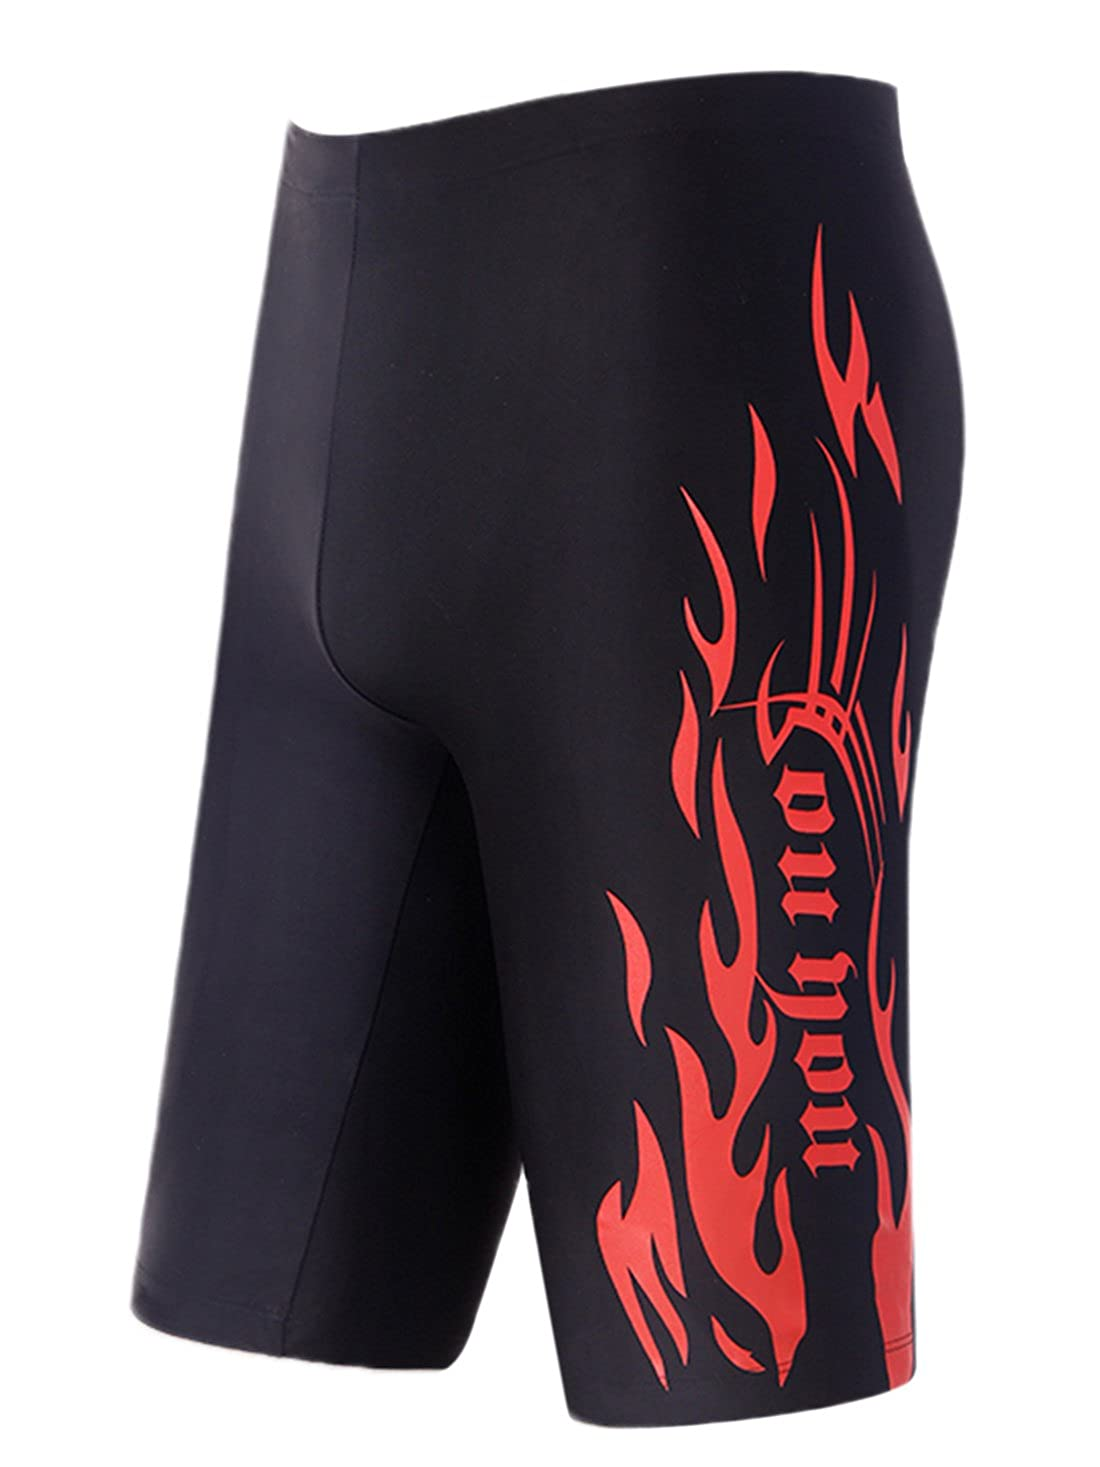 Mens Splice Jammer Compression Low Waist Swim Trunk Quick Dry Swimsuit Swimwear Panegy